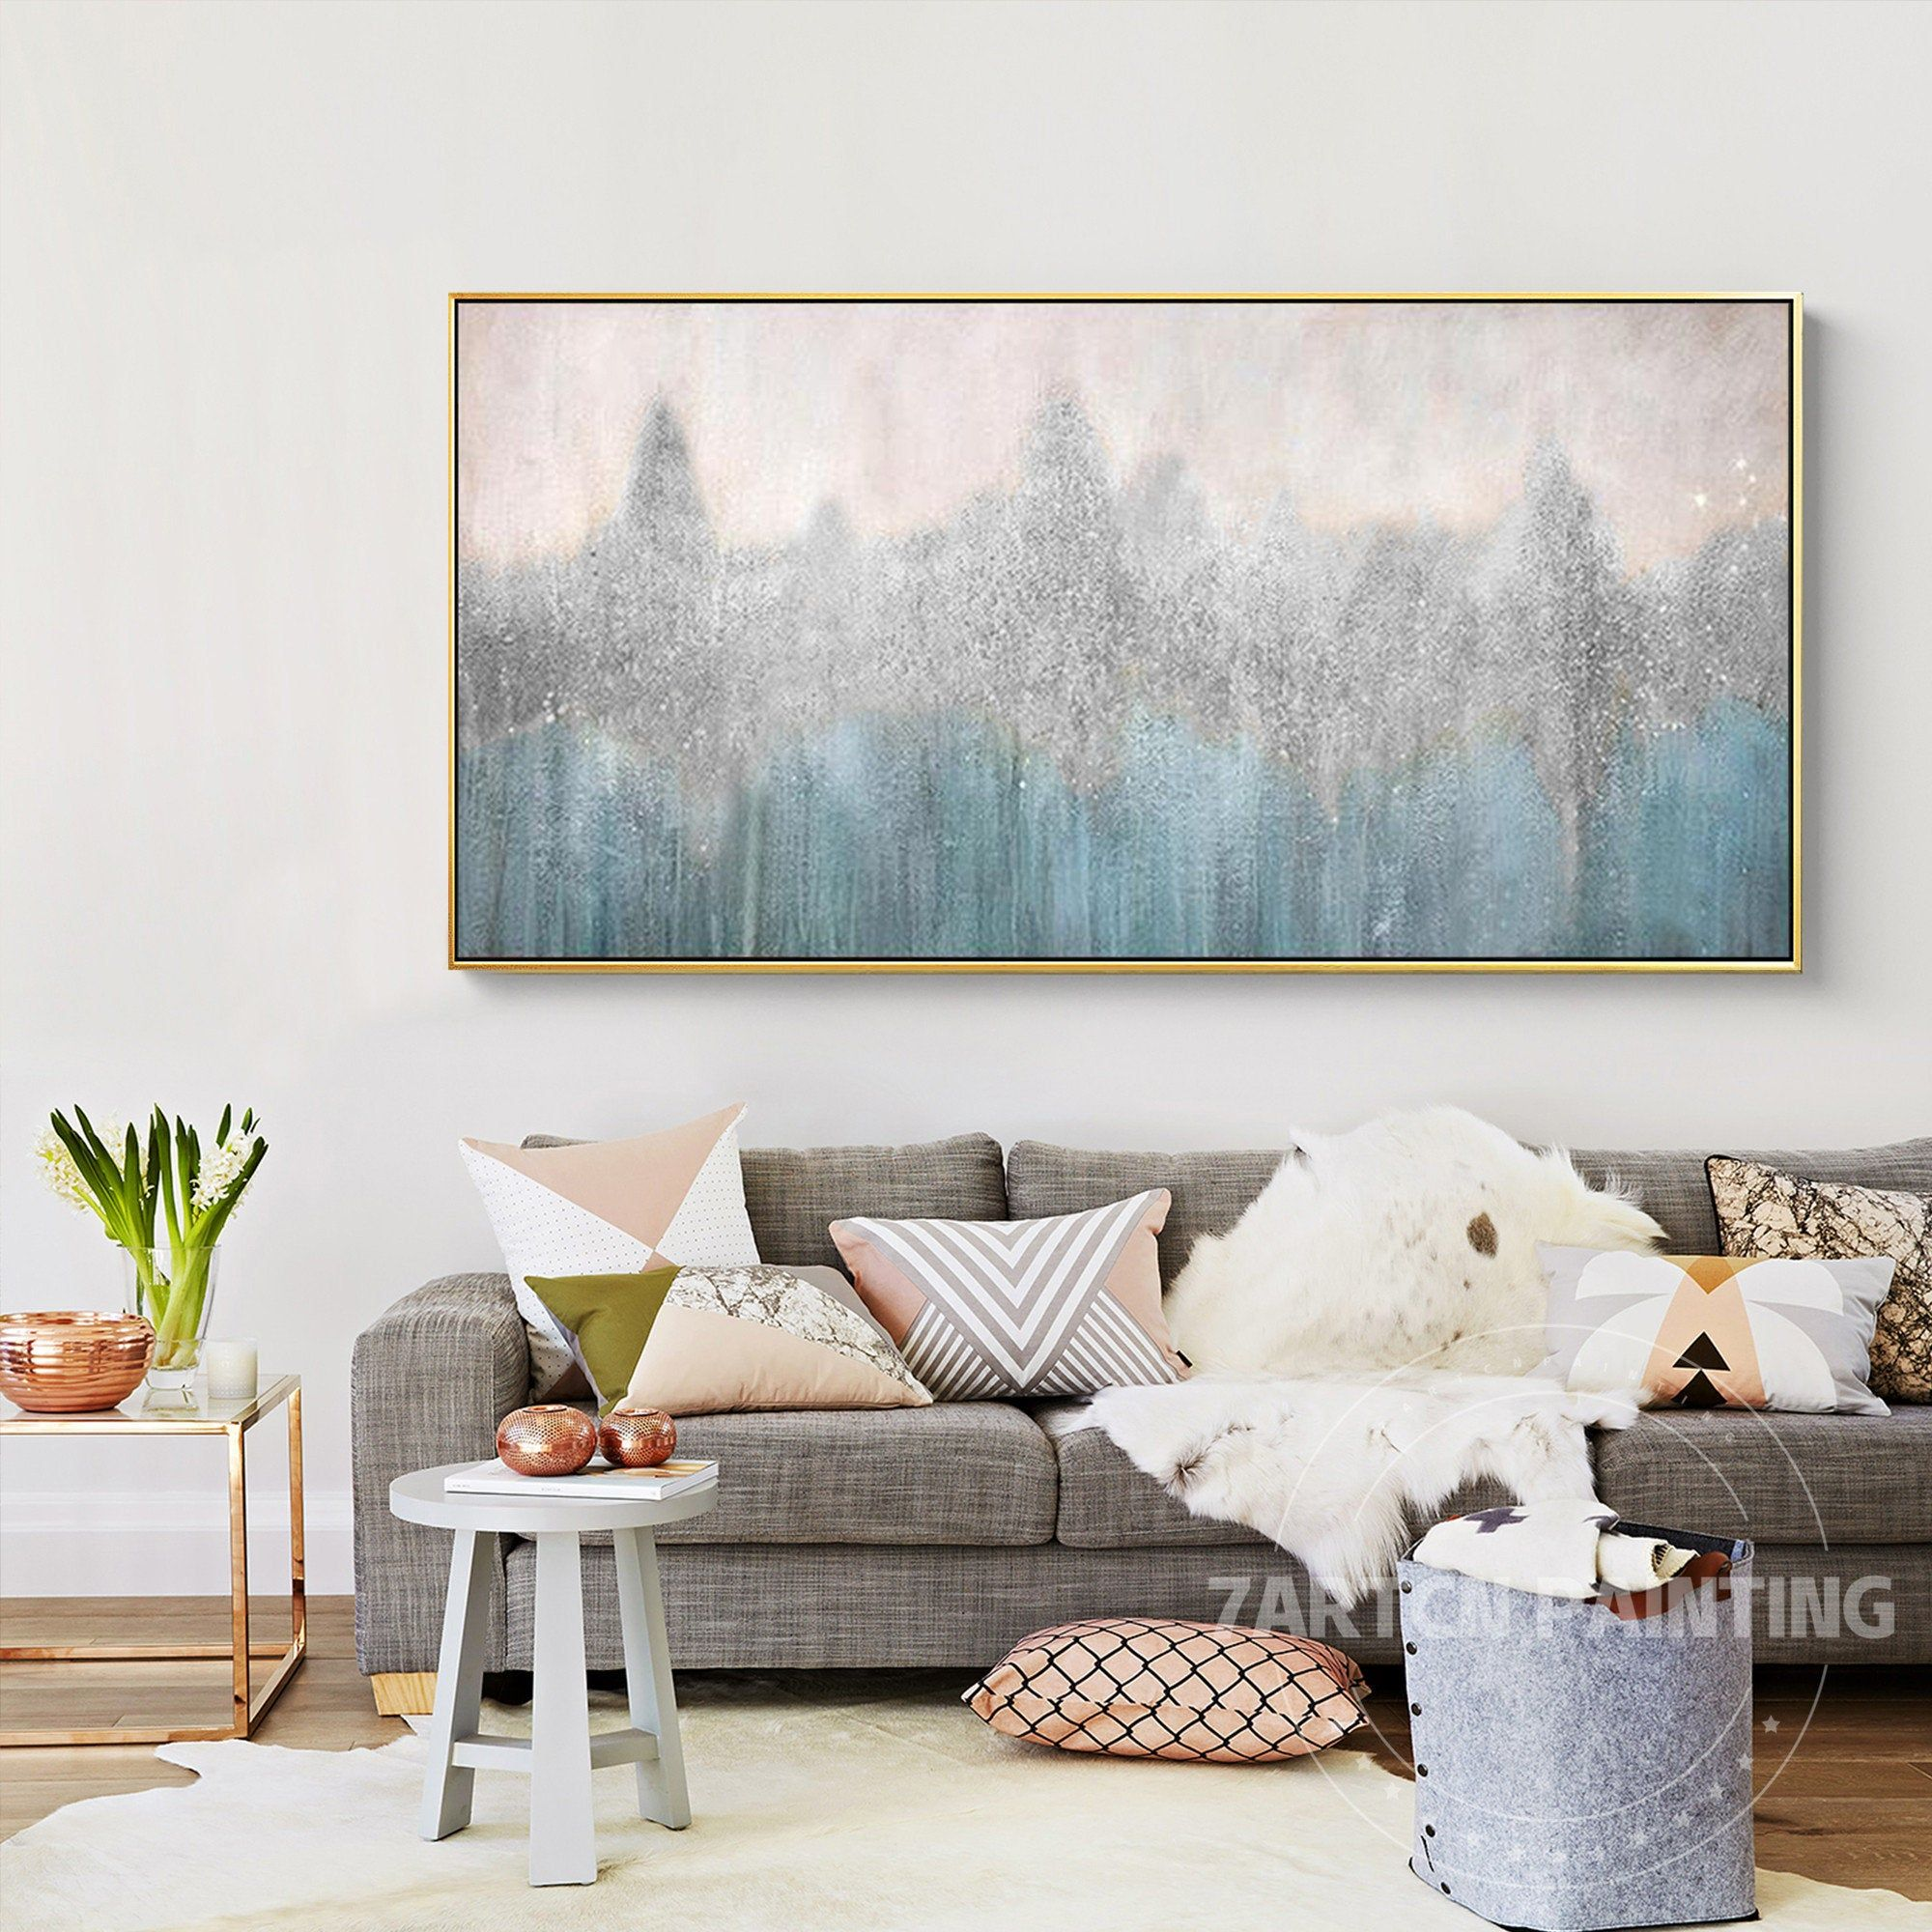 Framed Wall Art Modern Abstract Silver Blue Oil Painting On Canvas Gold Mountain Wall Pictures Hand Painted Grey Wall Decor Abstractos In 2021 Frames On Wall Grey Wall Decor Gray Painted Walls